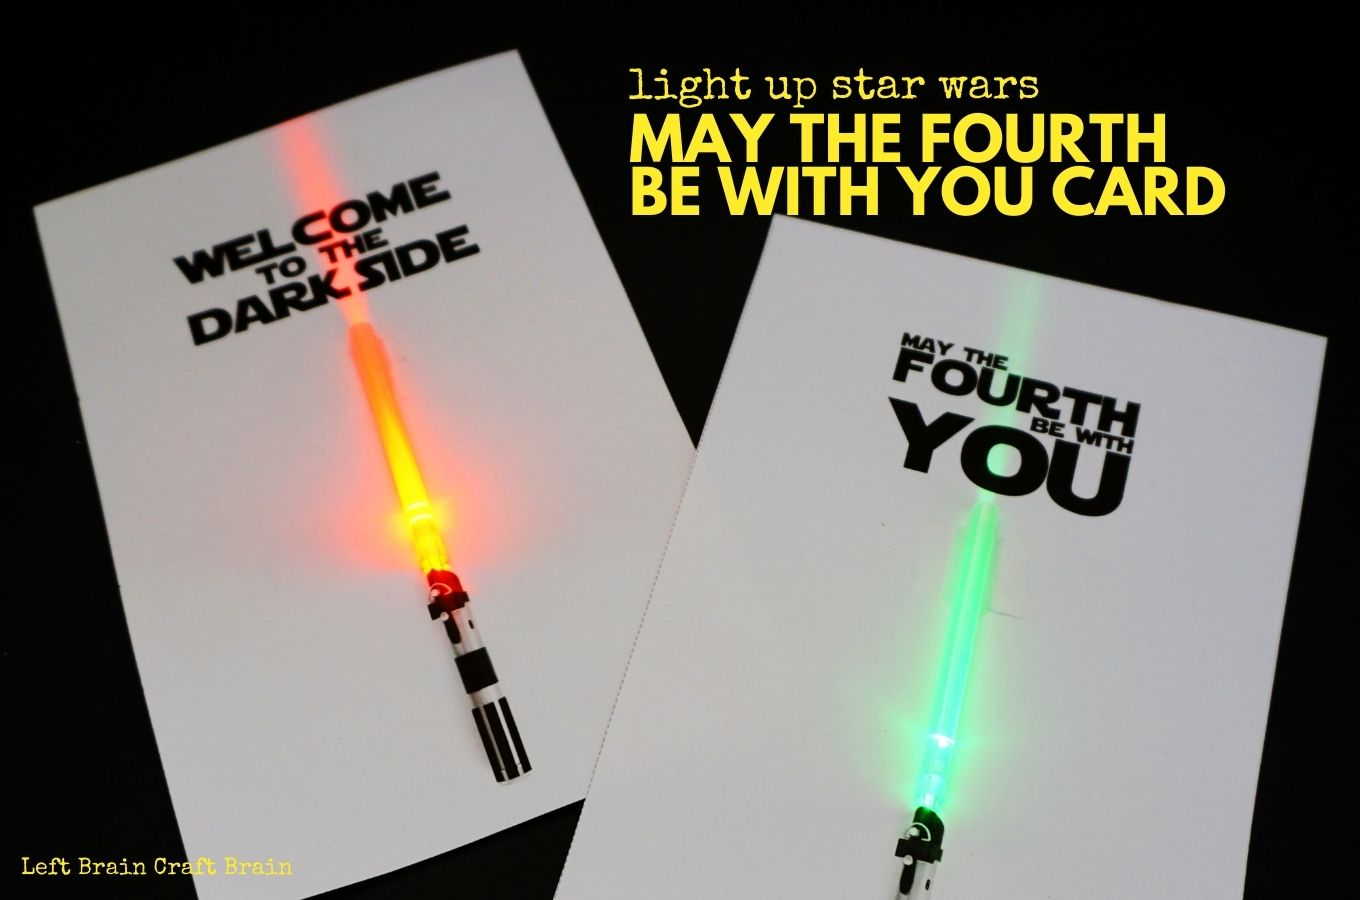 Light Up May the Fourth Be With You Card 1360x900